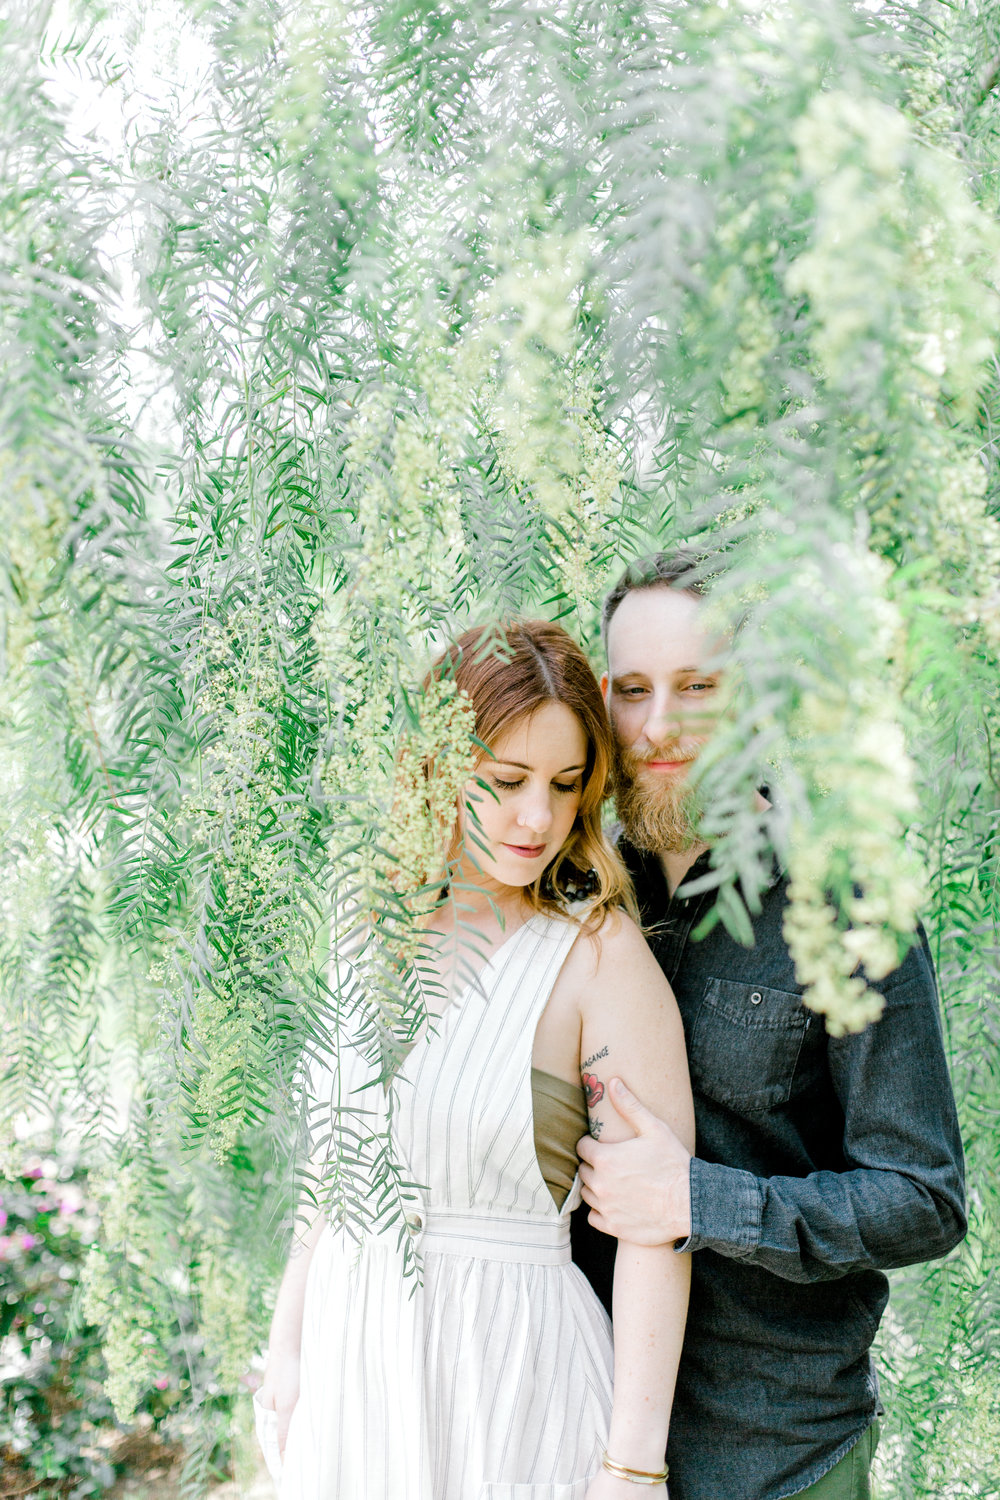 jessica sgubin photography atlanta portrait photographer cacti garden engagement family couple wedding joshua tree wedding elopement-1-3.jpg